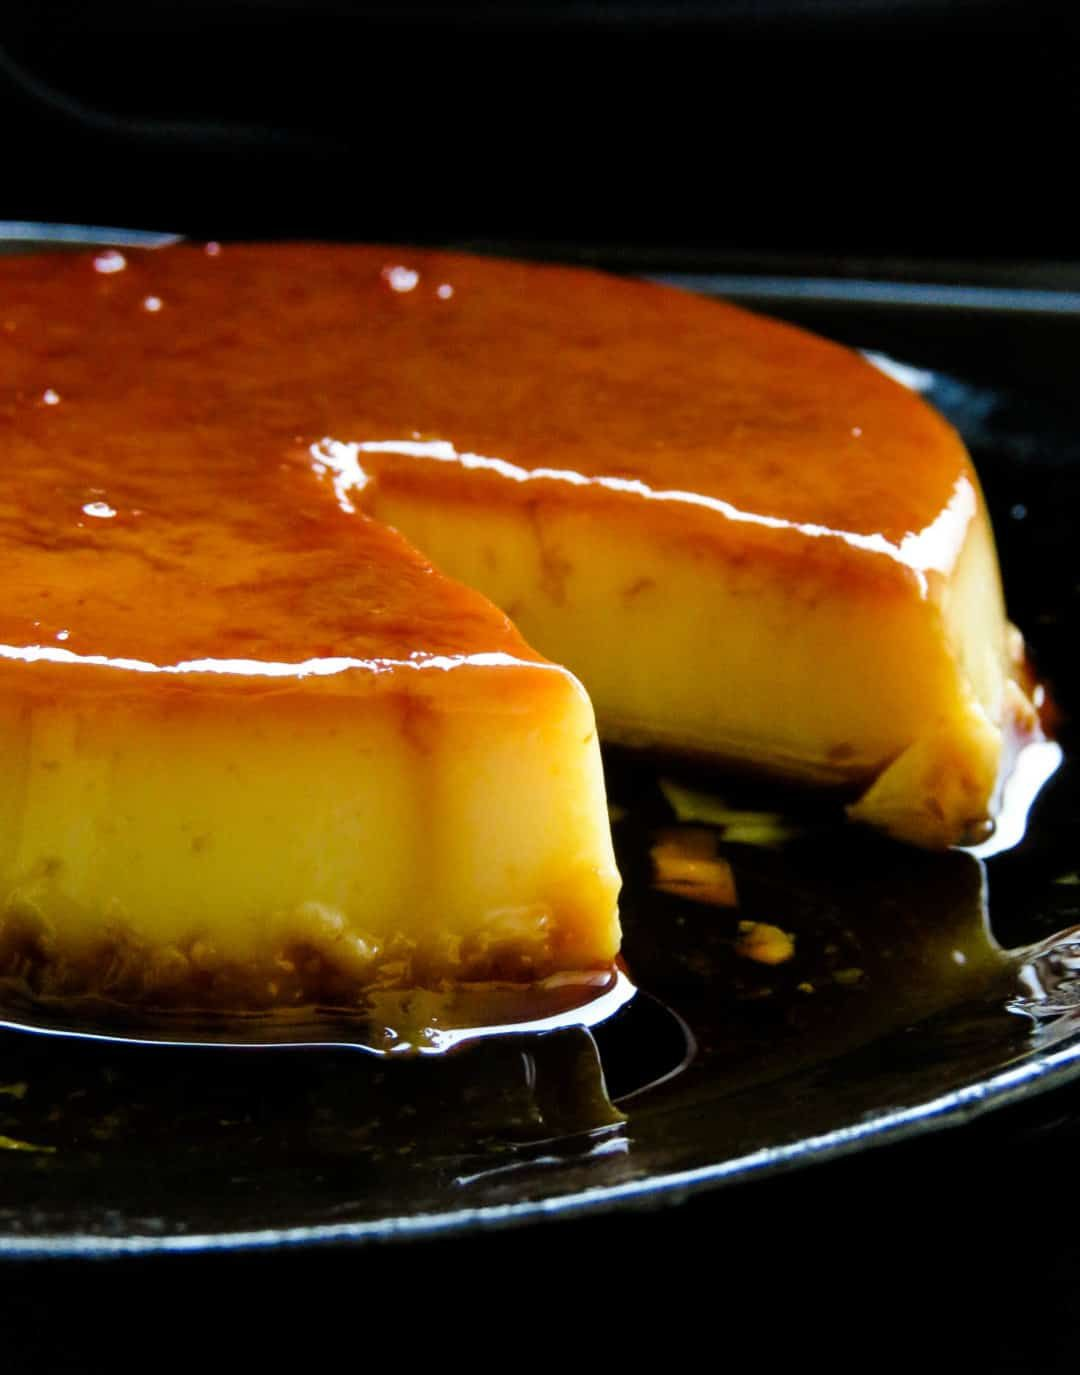 Condensed Milk Caramel Pudding The Easiest Dessert You Ll Ever Make With Just Four Condensed Milk Recipes Desserts Milk Recipes Dessert Condensed Milk Recipes